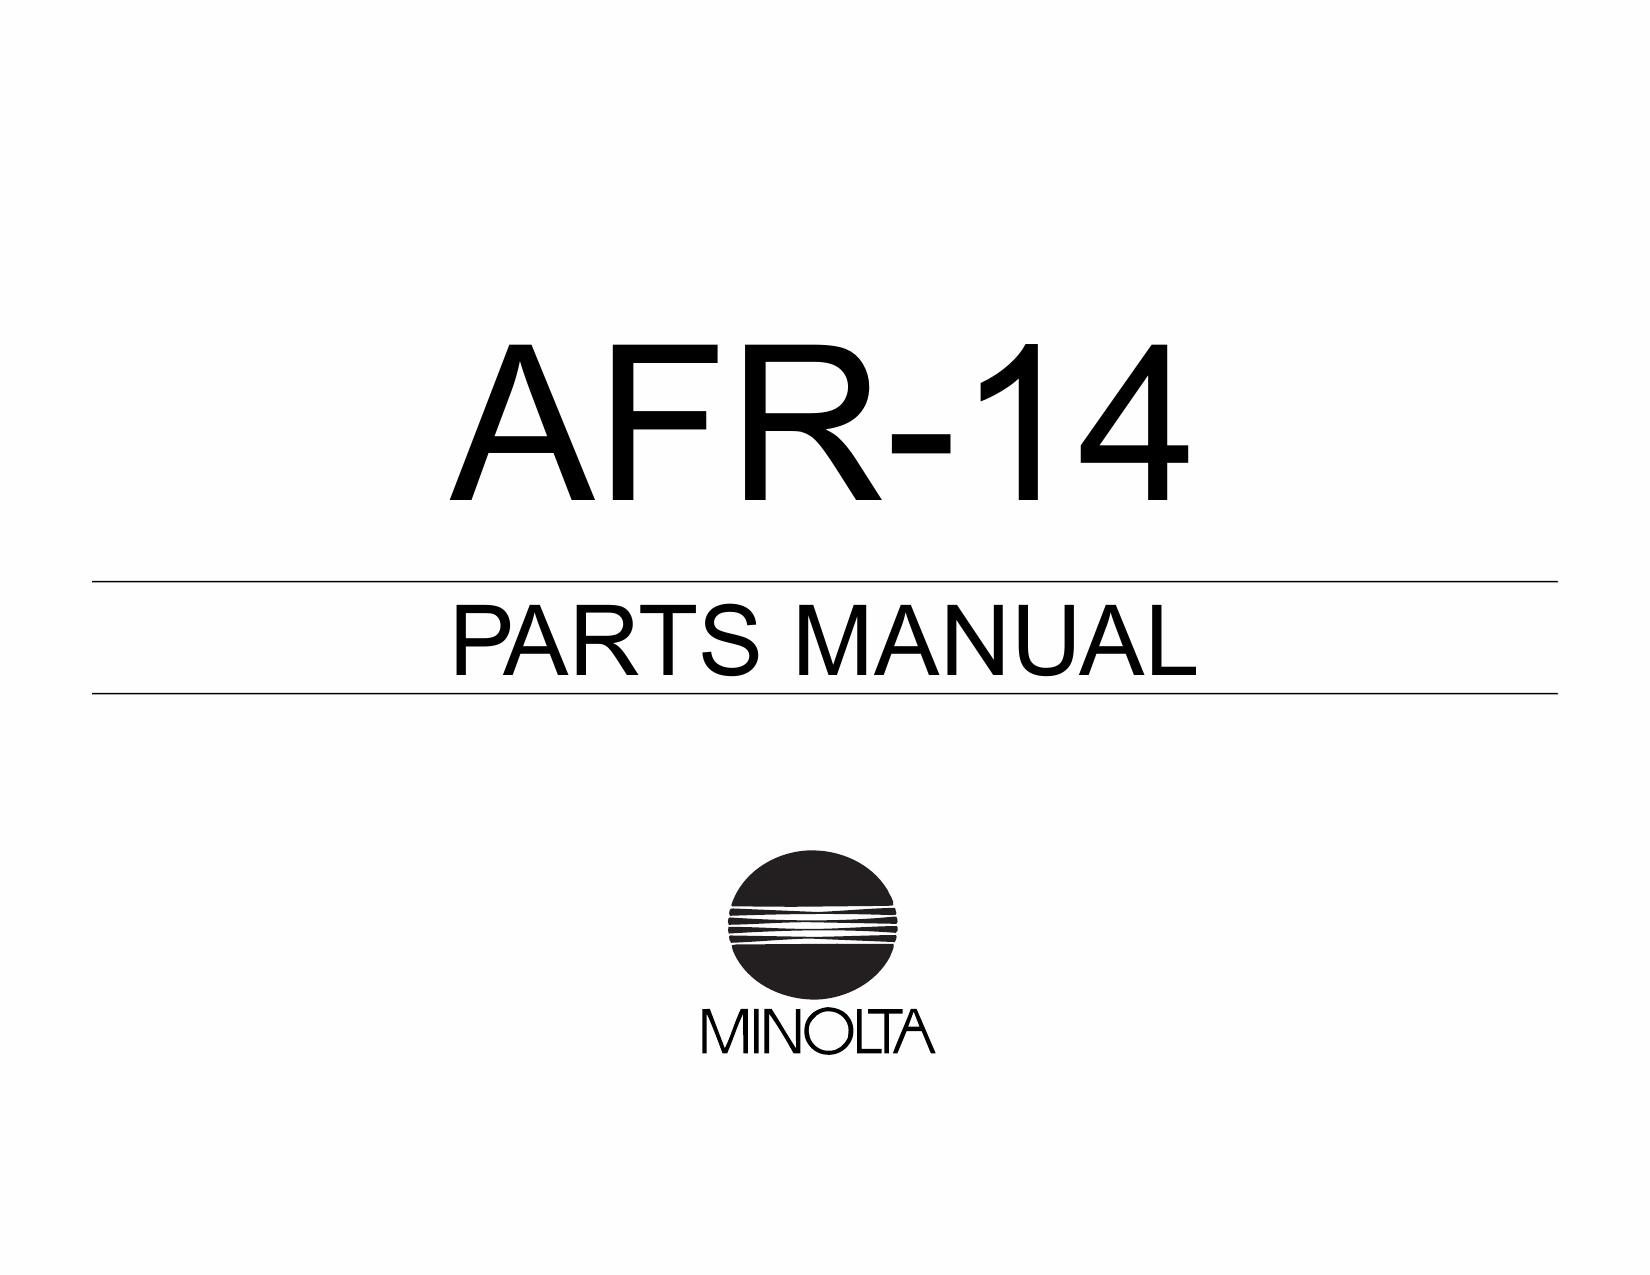 Konica-Minolta Options AFR-14 Parts Manual-1